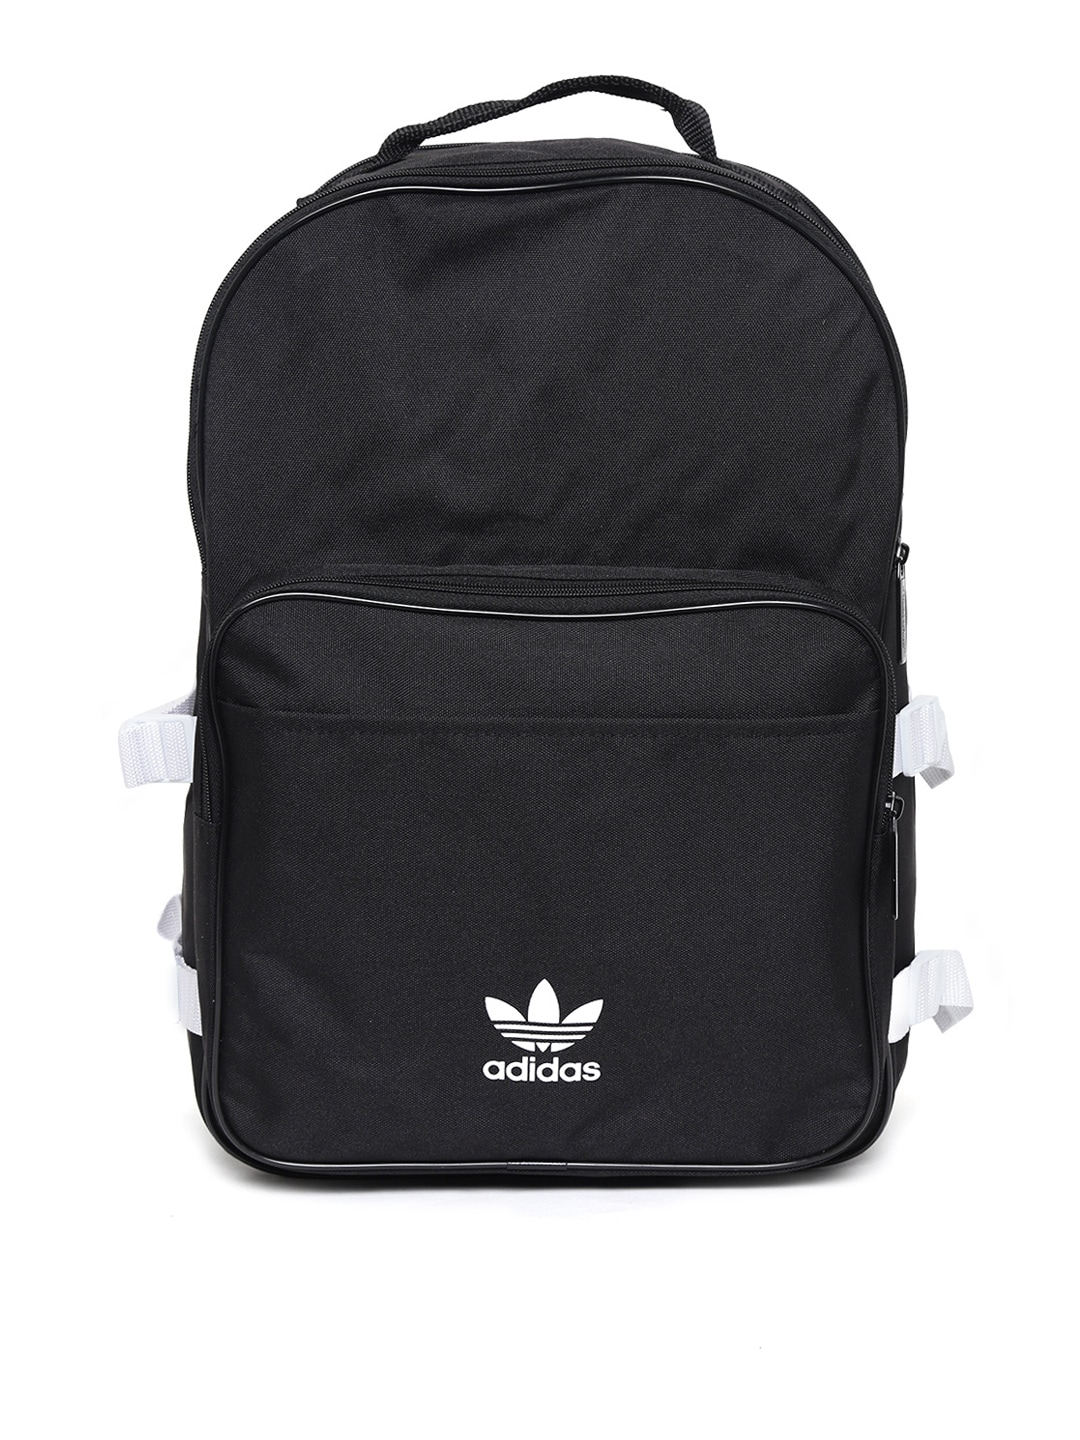 fb014c66a5 Adidas Original Backpacks - Buy Adidas Original Backpacks Online in India